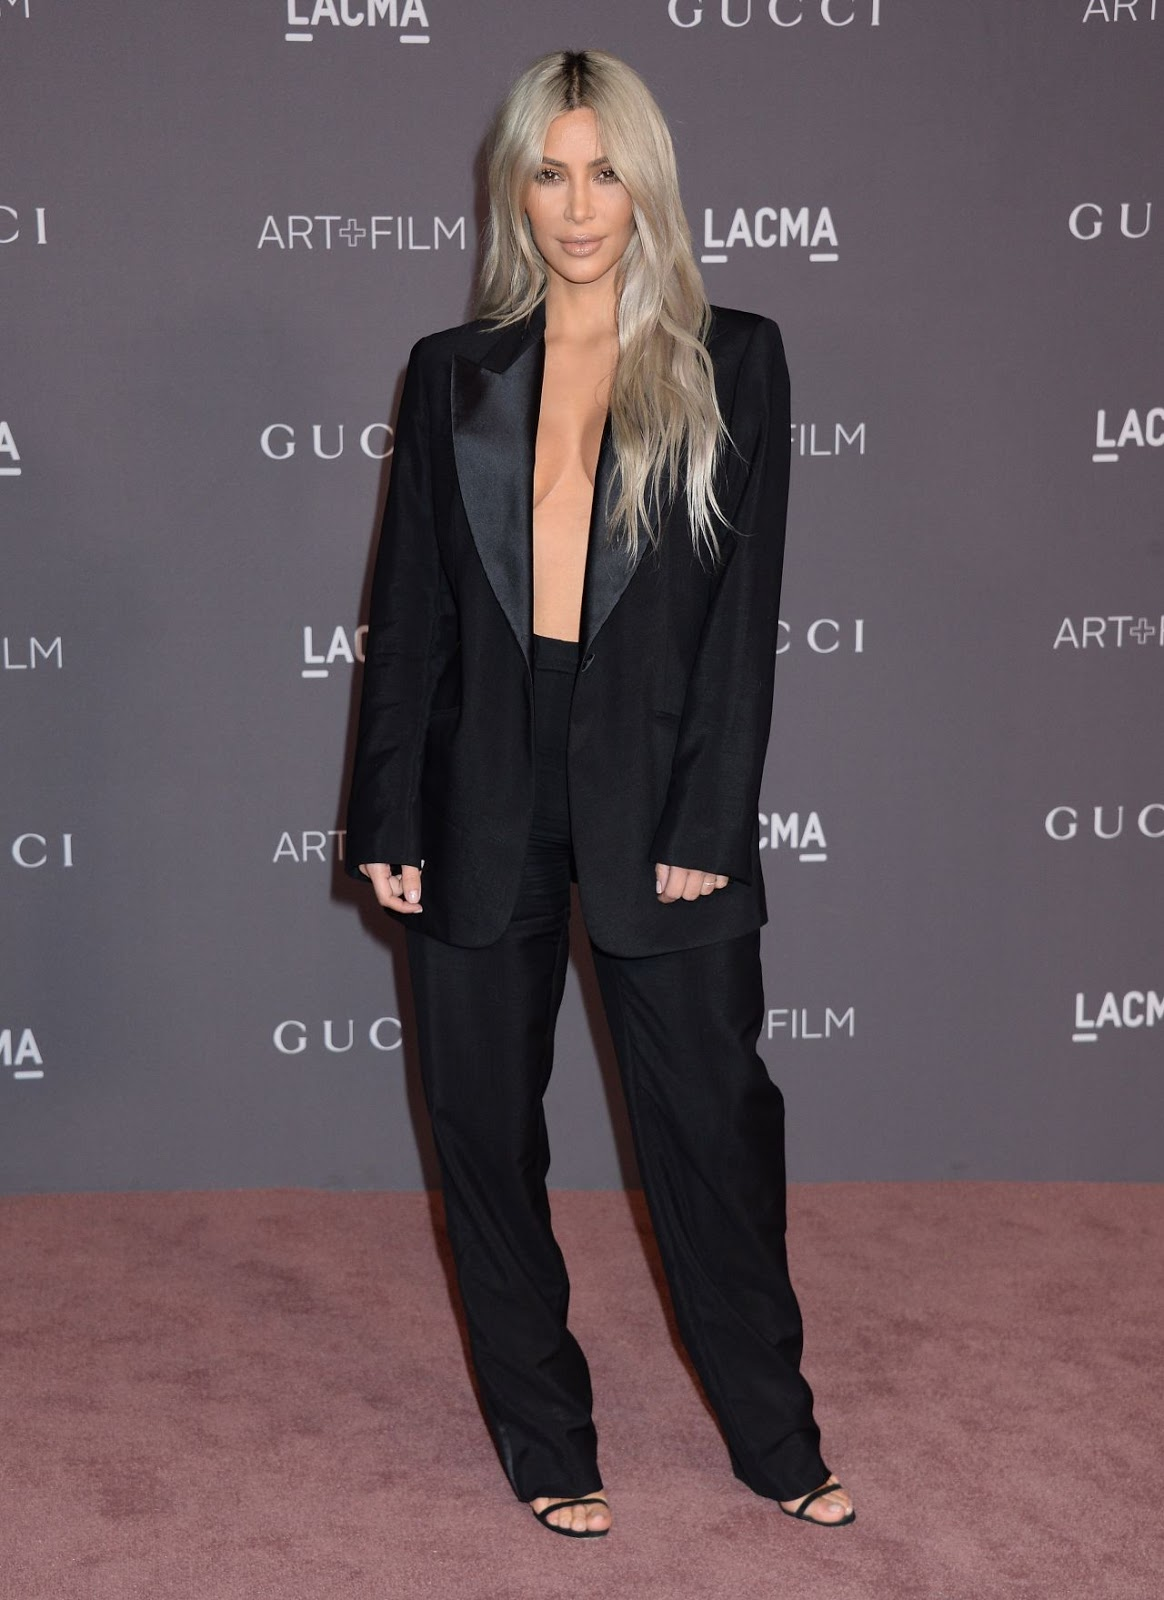 Kim Kardashian gives an eyeful of cleavage at the 2017 LACMA Art + Film Gala